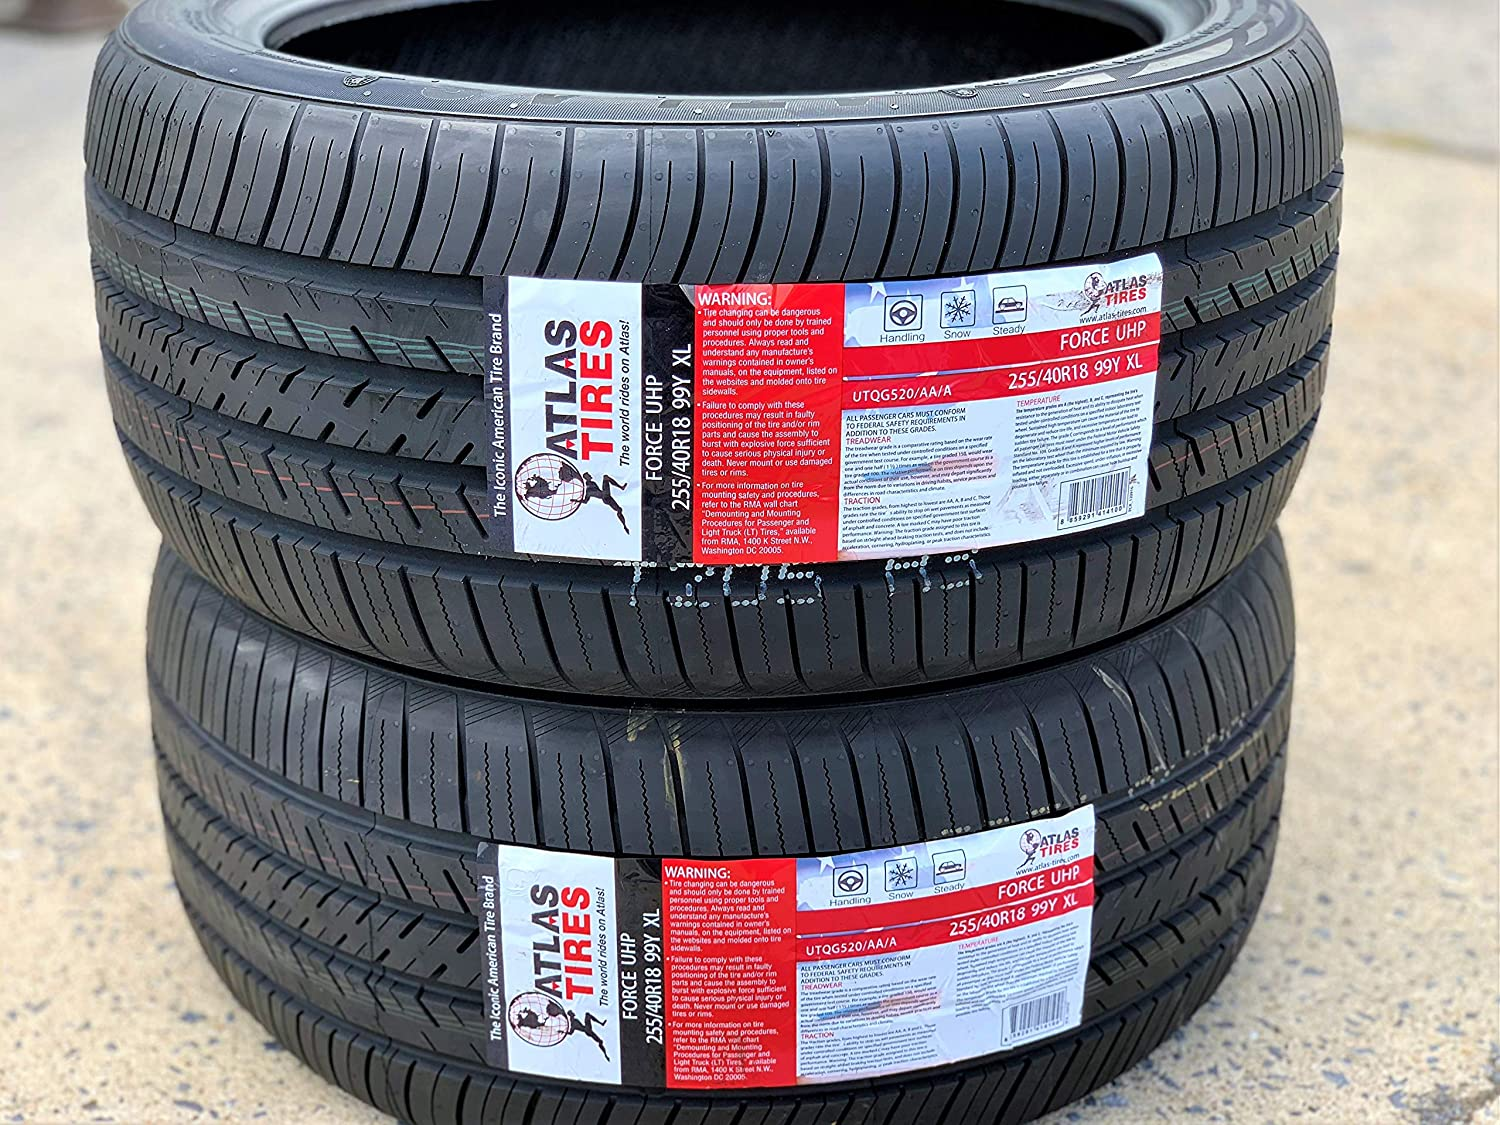 Set of 2 Atlas Tire Force UHP Ultra-High Performance All-Season Radial Tires 255//40R18 99Y XL TWO